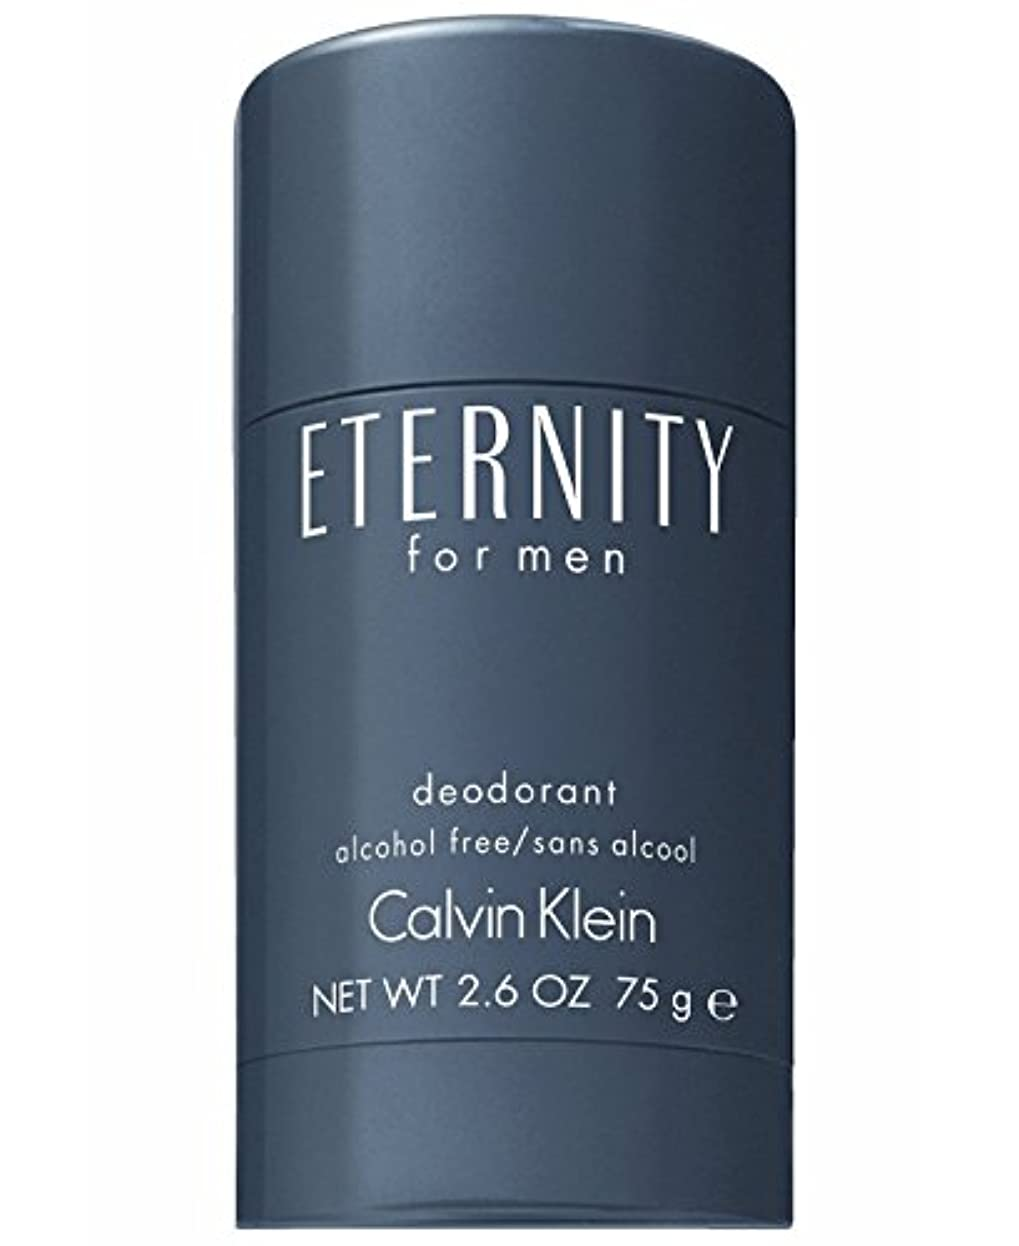 症状美的ファランクスEternity (エタニティー) 2.6 oz (75ml) Deodorant by Calvin Klein for Men